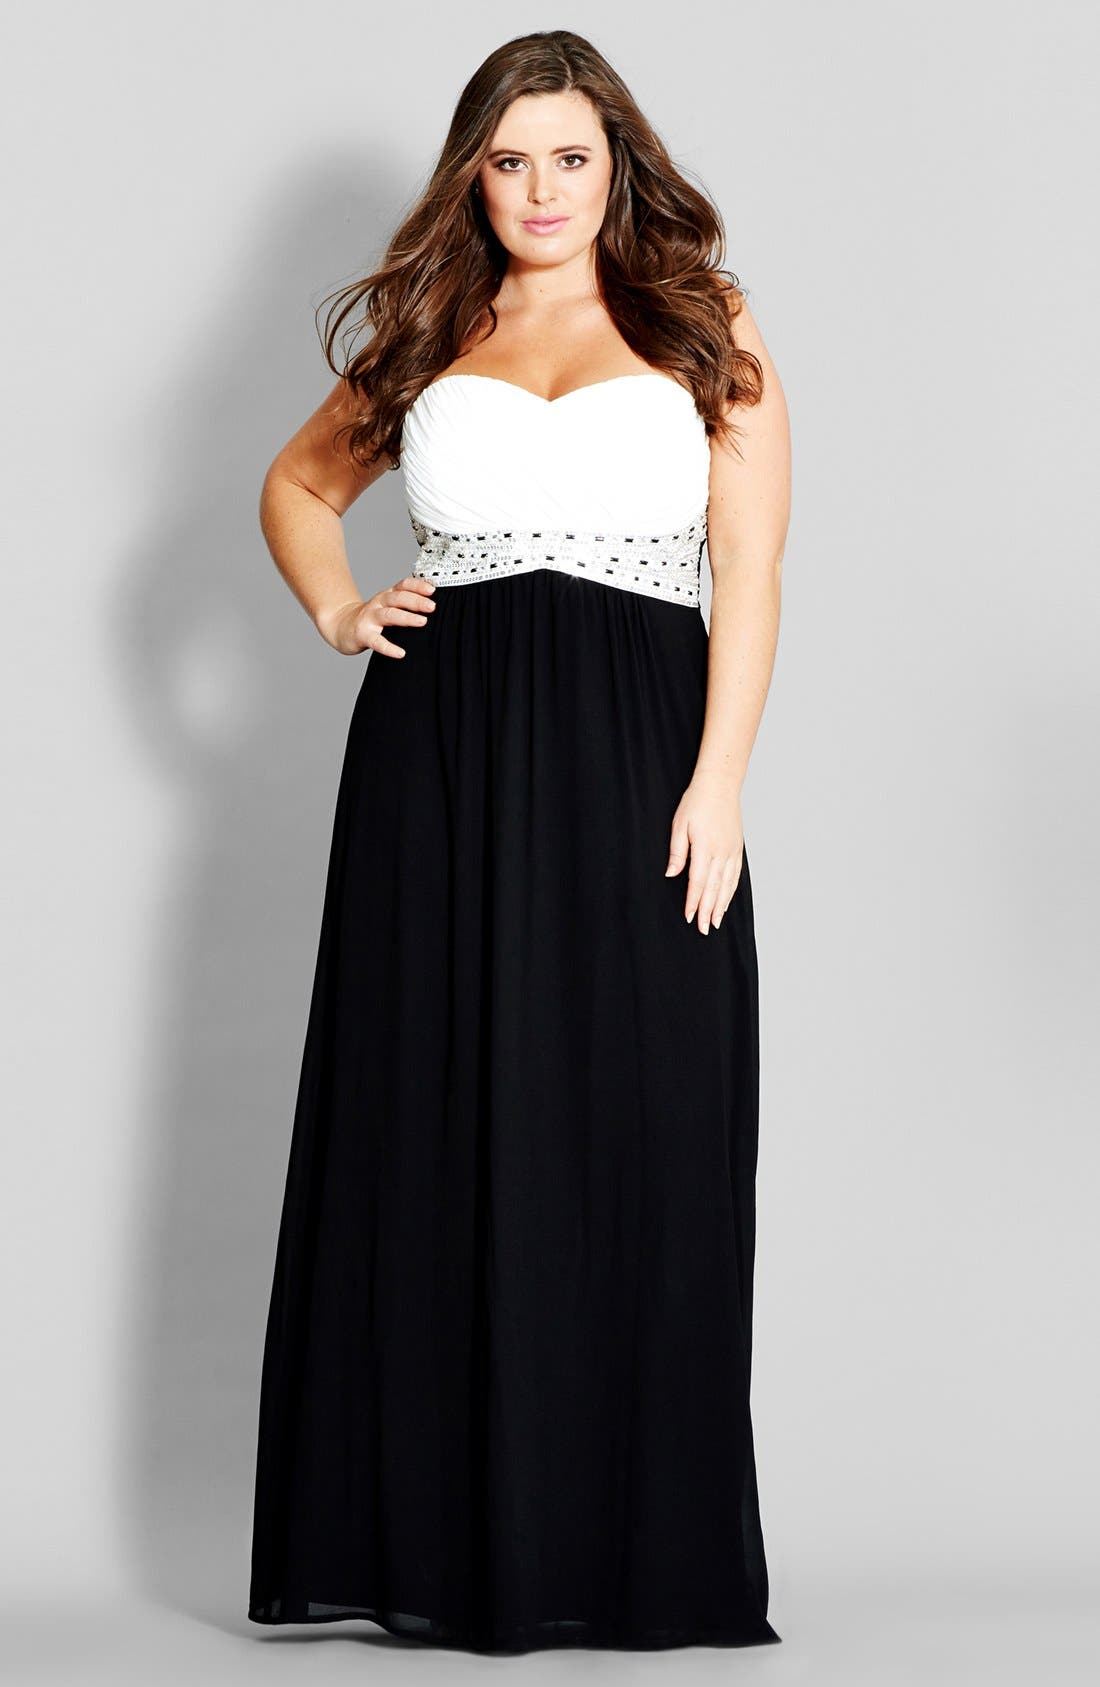 CITY CHIC 'Contrast Camilla' Embellished Strapless Maxi Dress